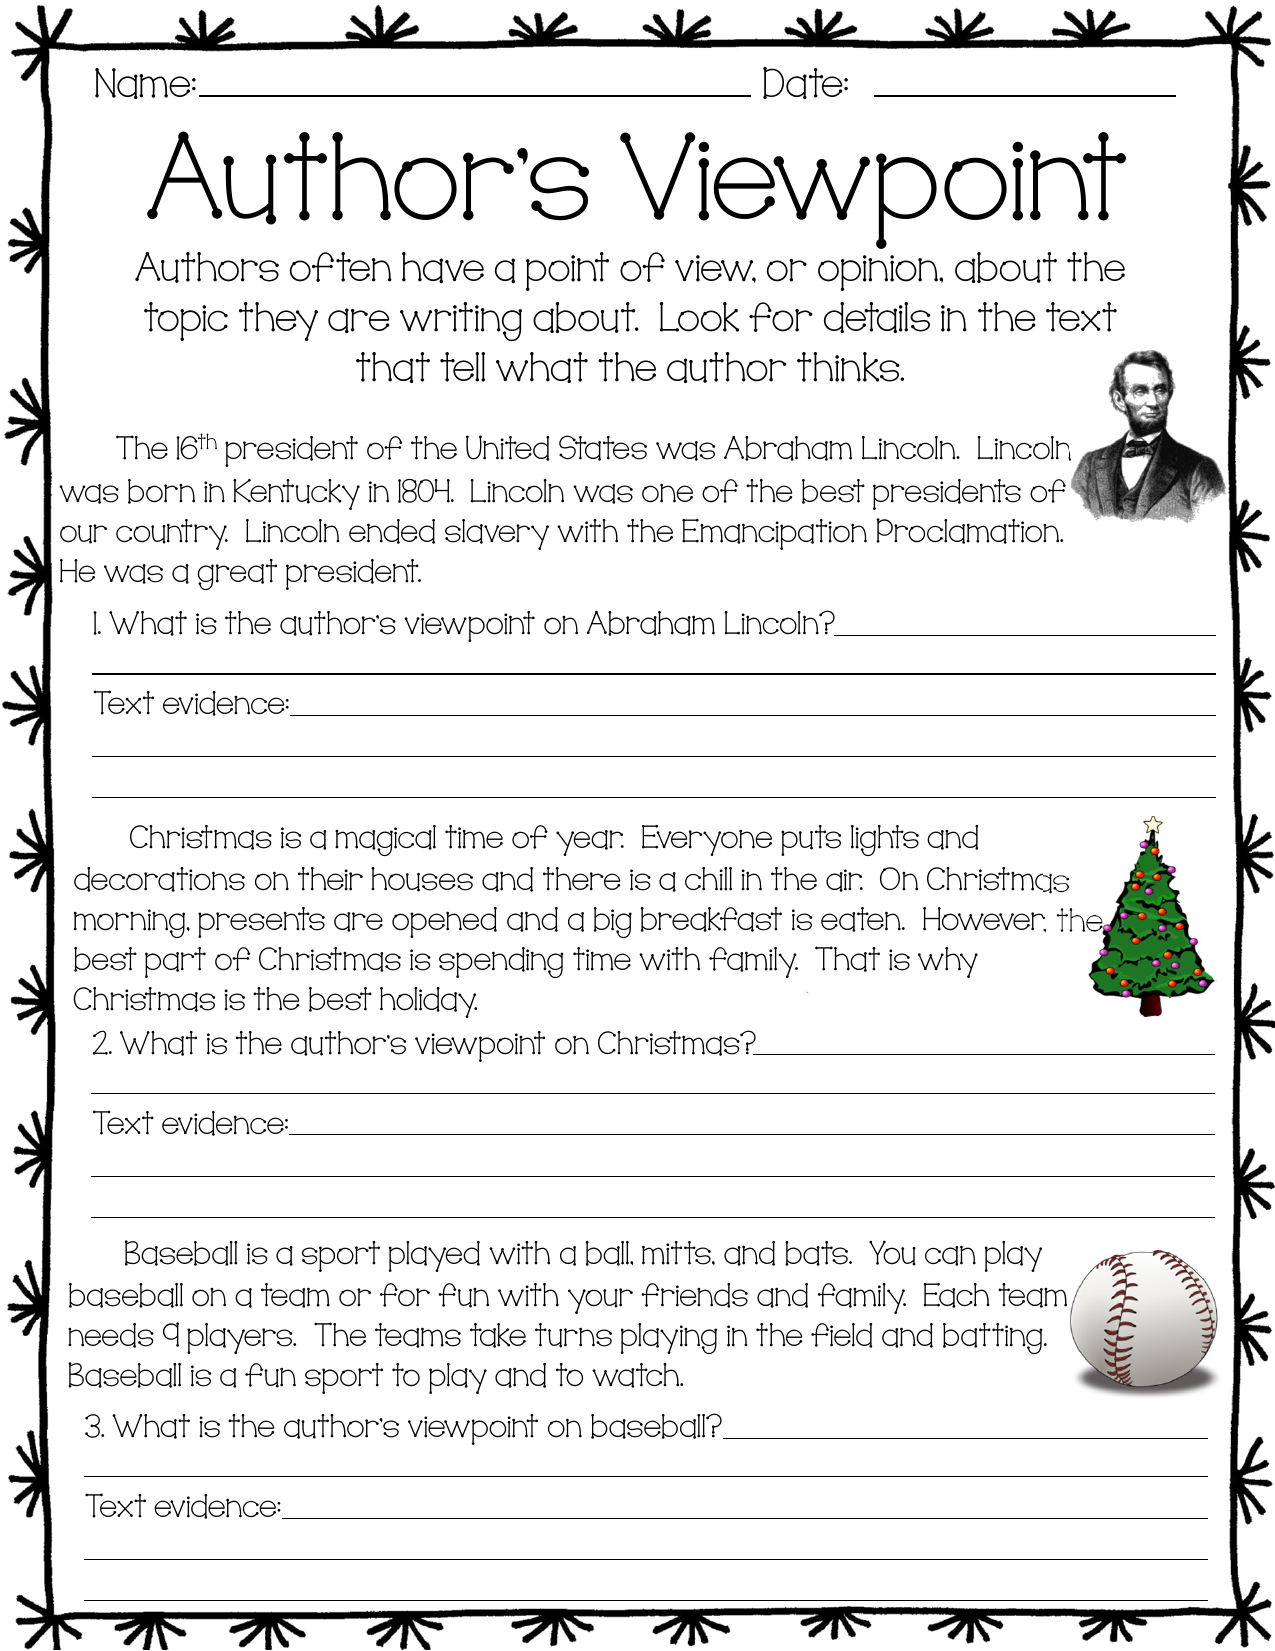 Why Christmas Is The Best Holiday.Authorsviewpointactivity